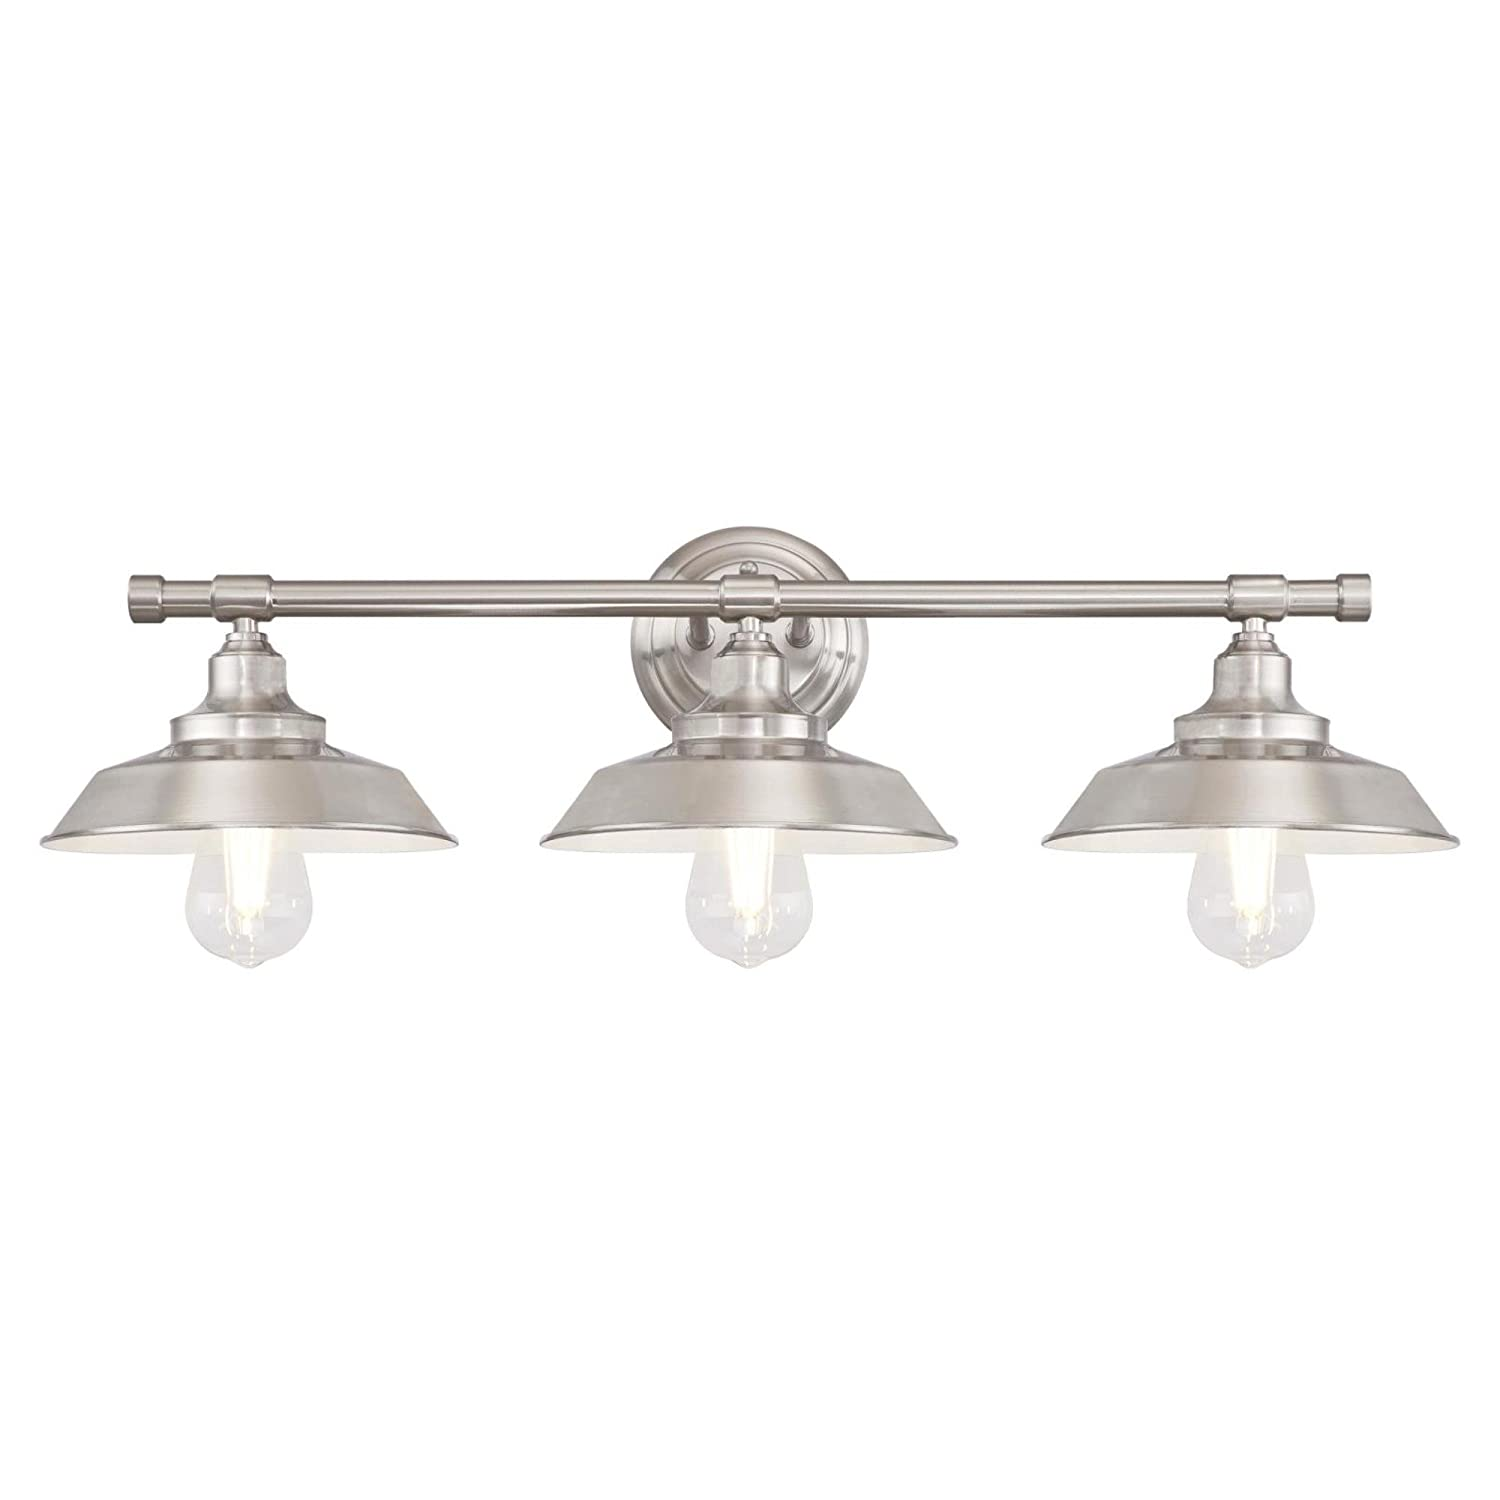 Brushed Nickel Westinghouse Lighting 6344900 Iron Hill Three-Light Indoor Wall Fixture, 3, Oil Rubbed Bronze Interior